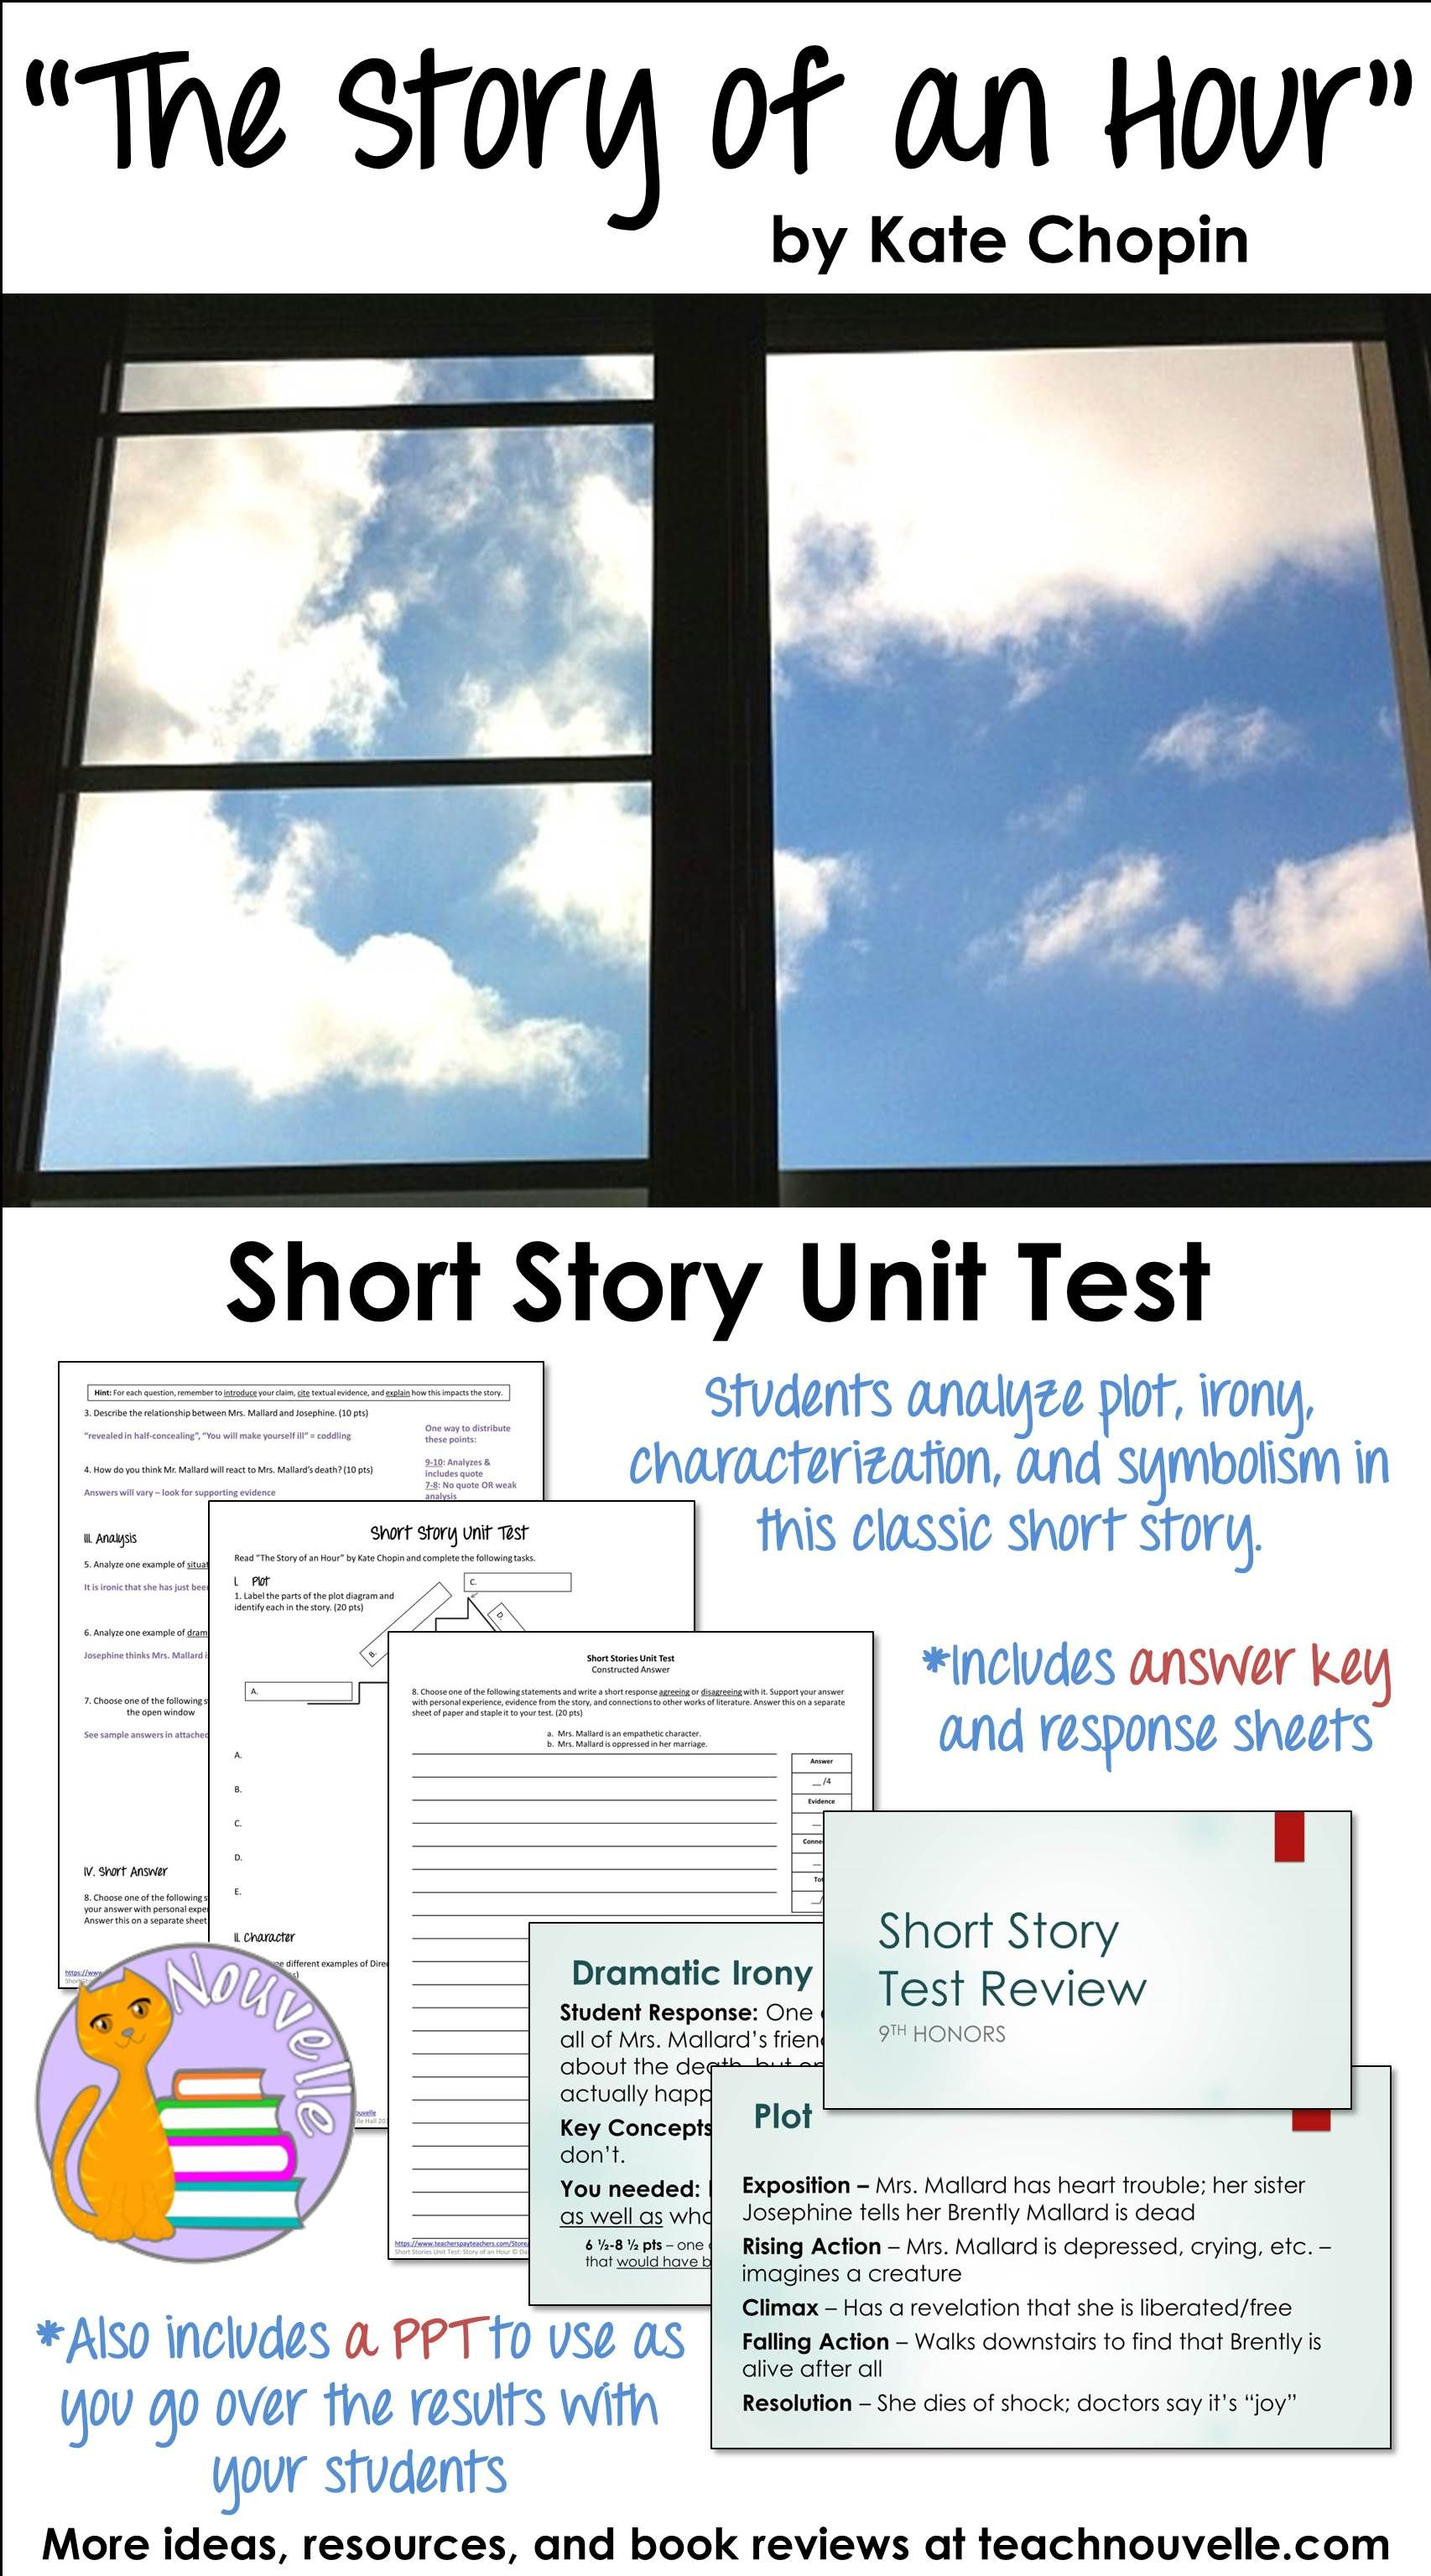 Short Story Unit Test Short Stories For High School Students